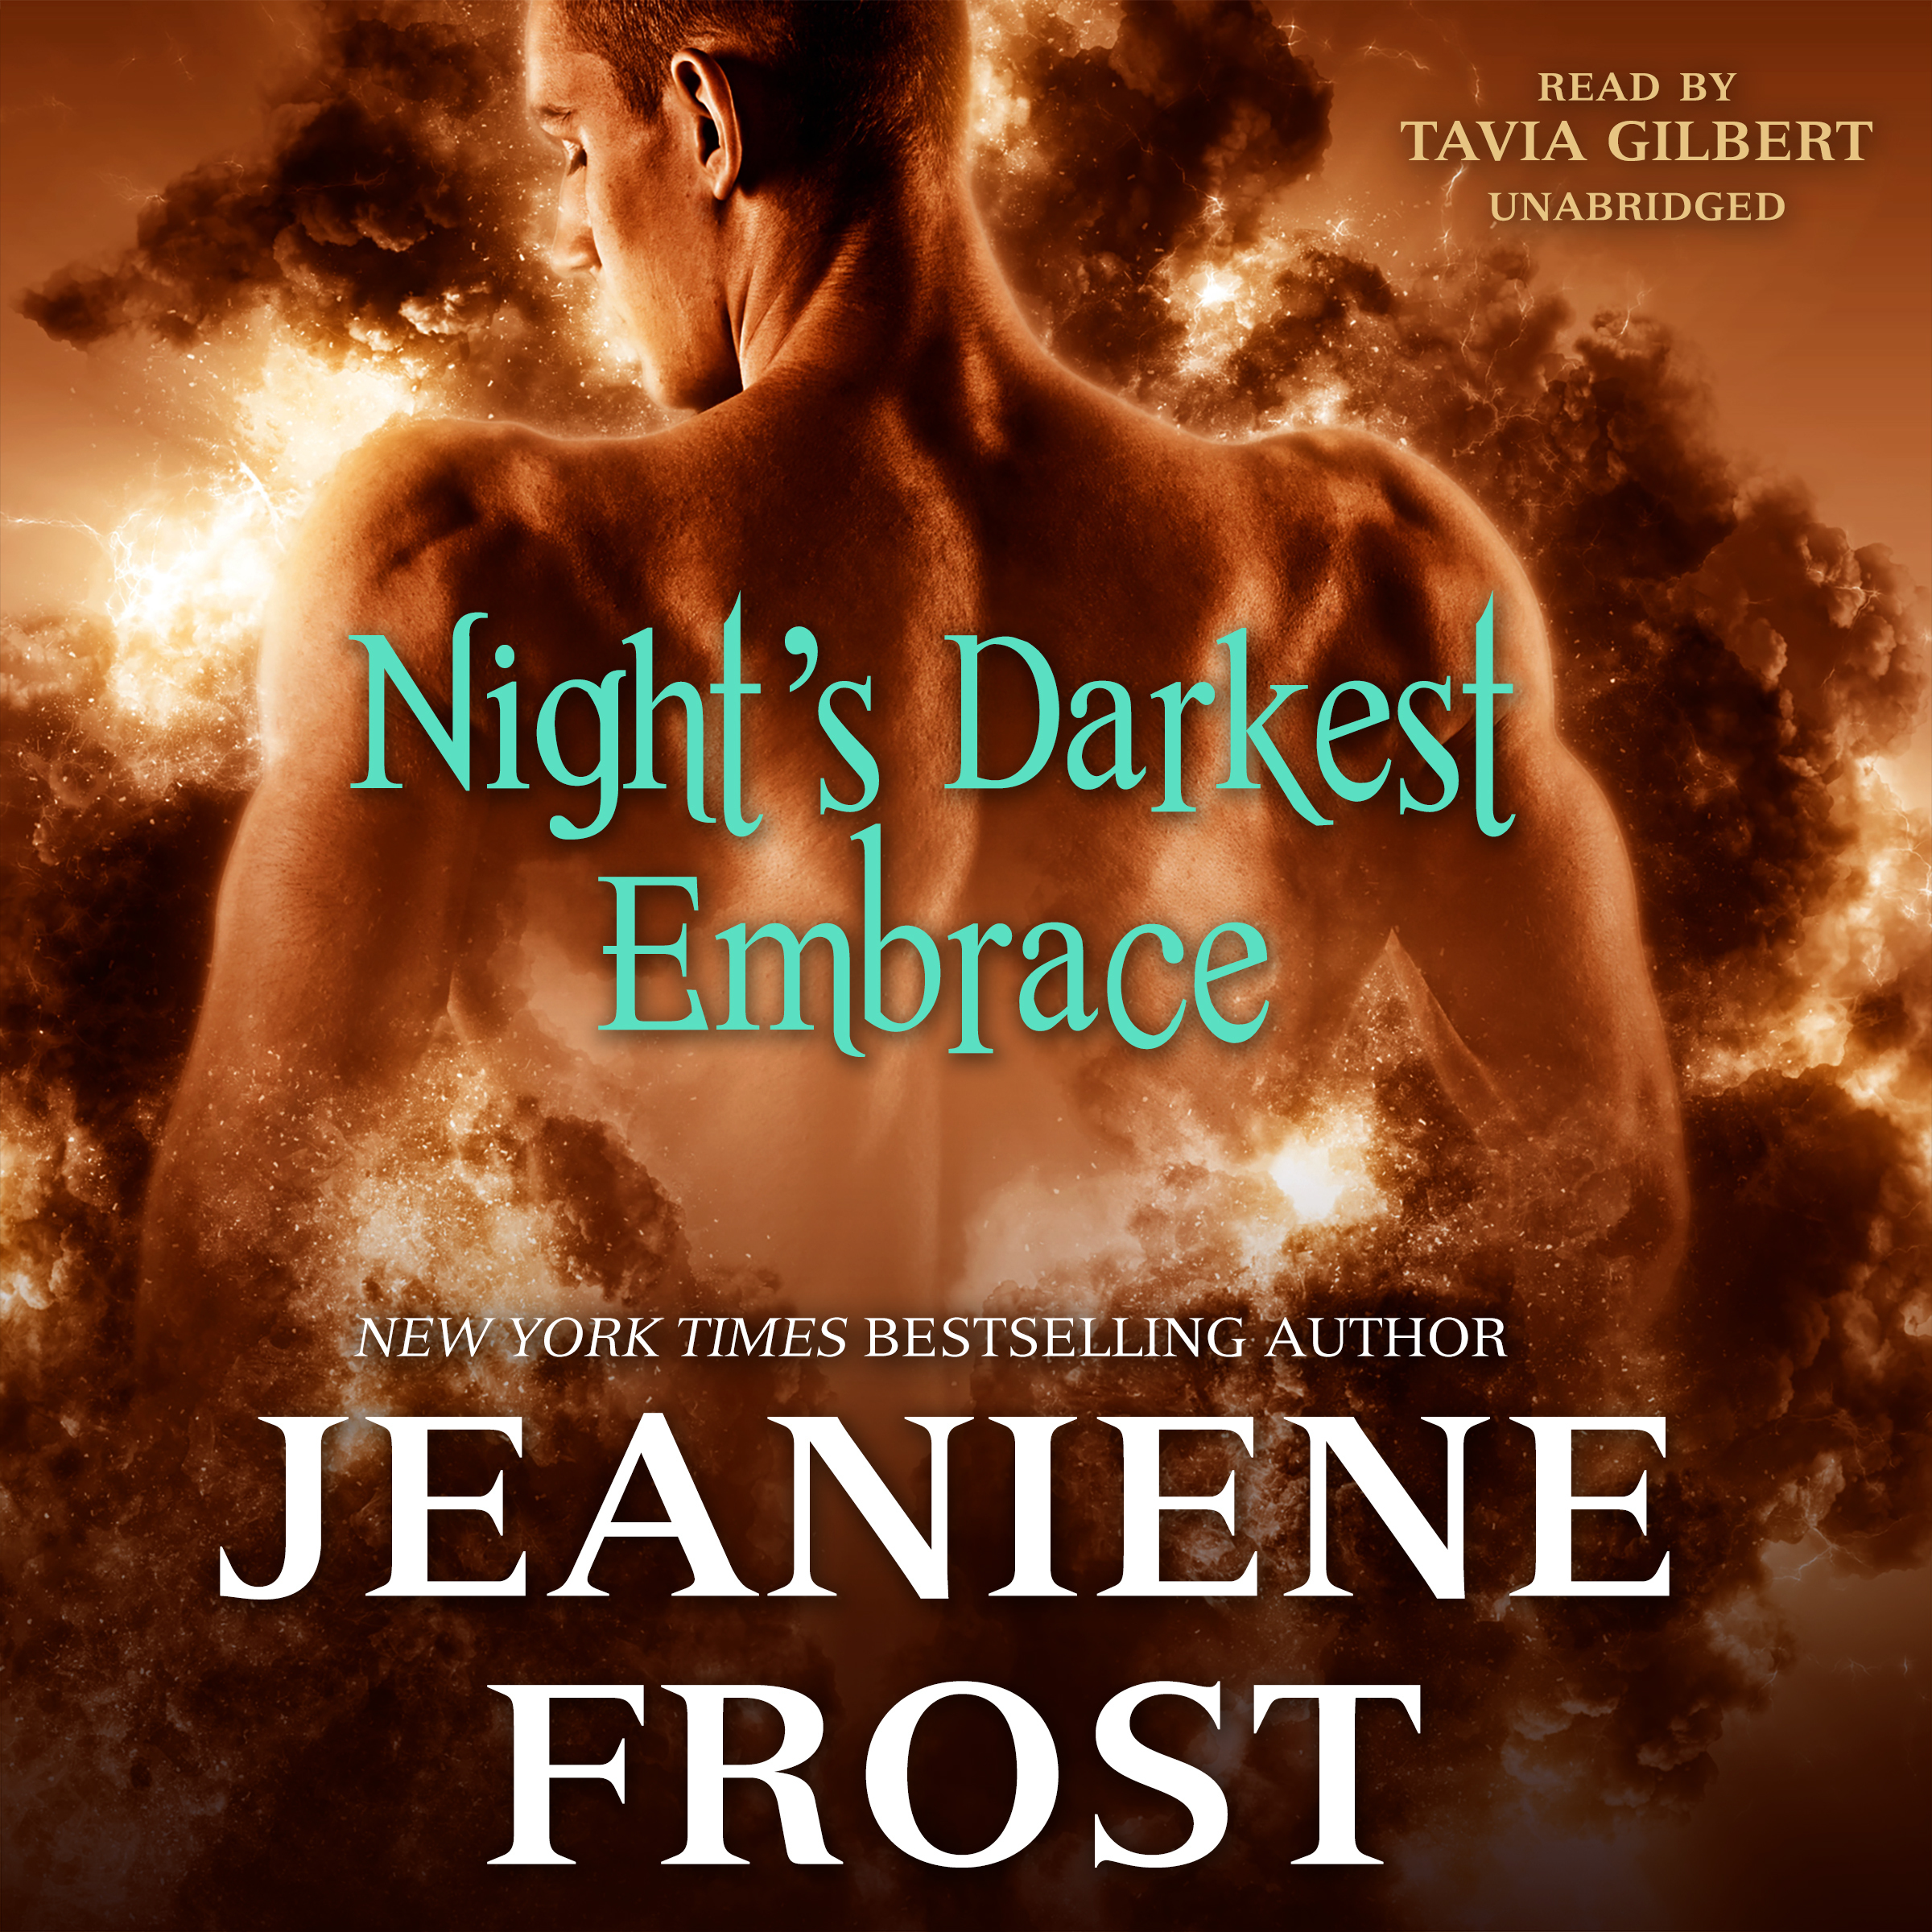 Printable Night's Darkest Embrace Audiobook Cover Art